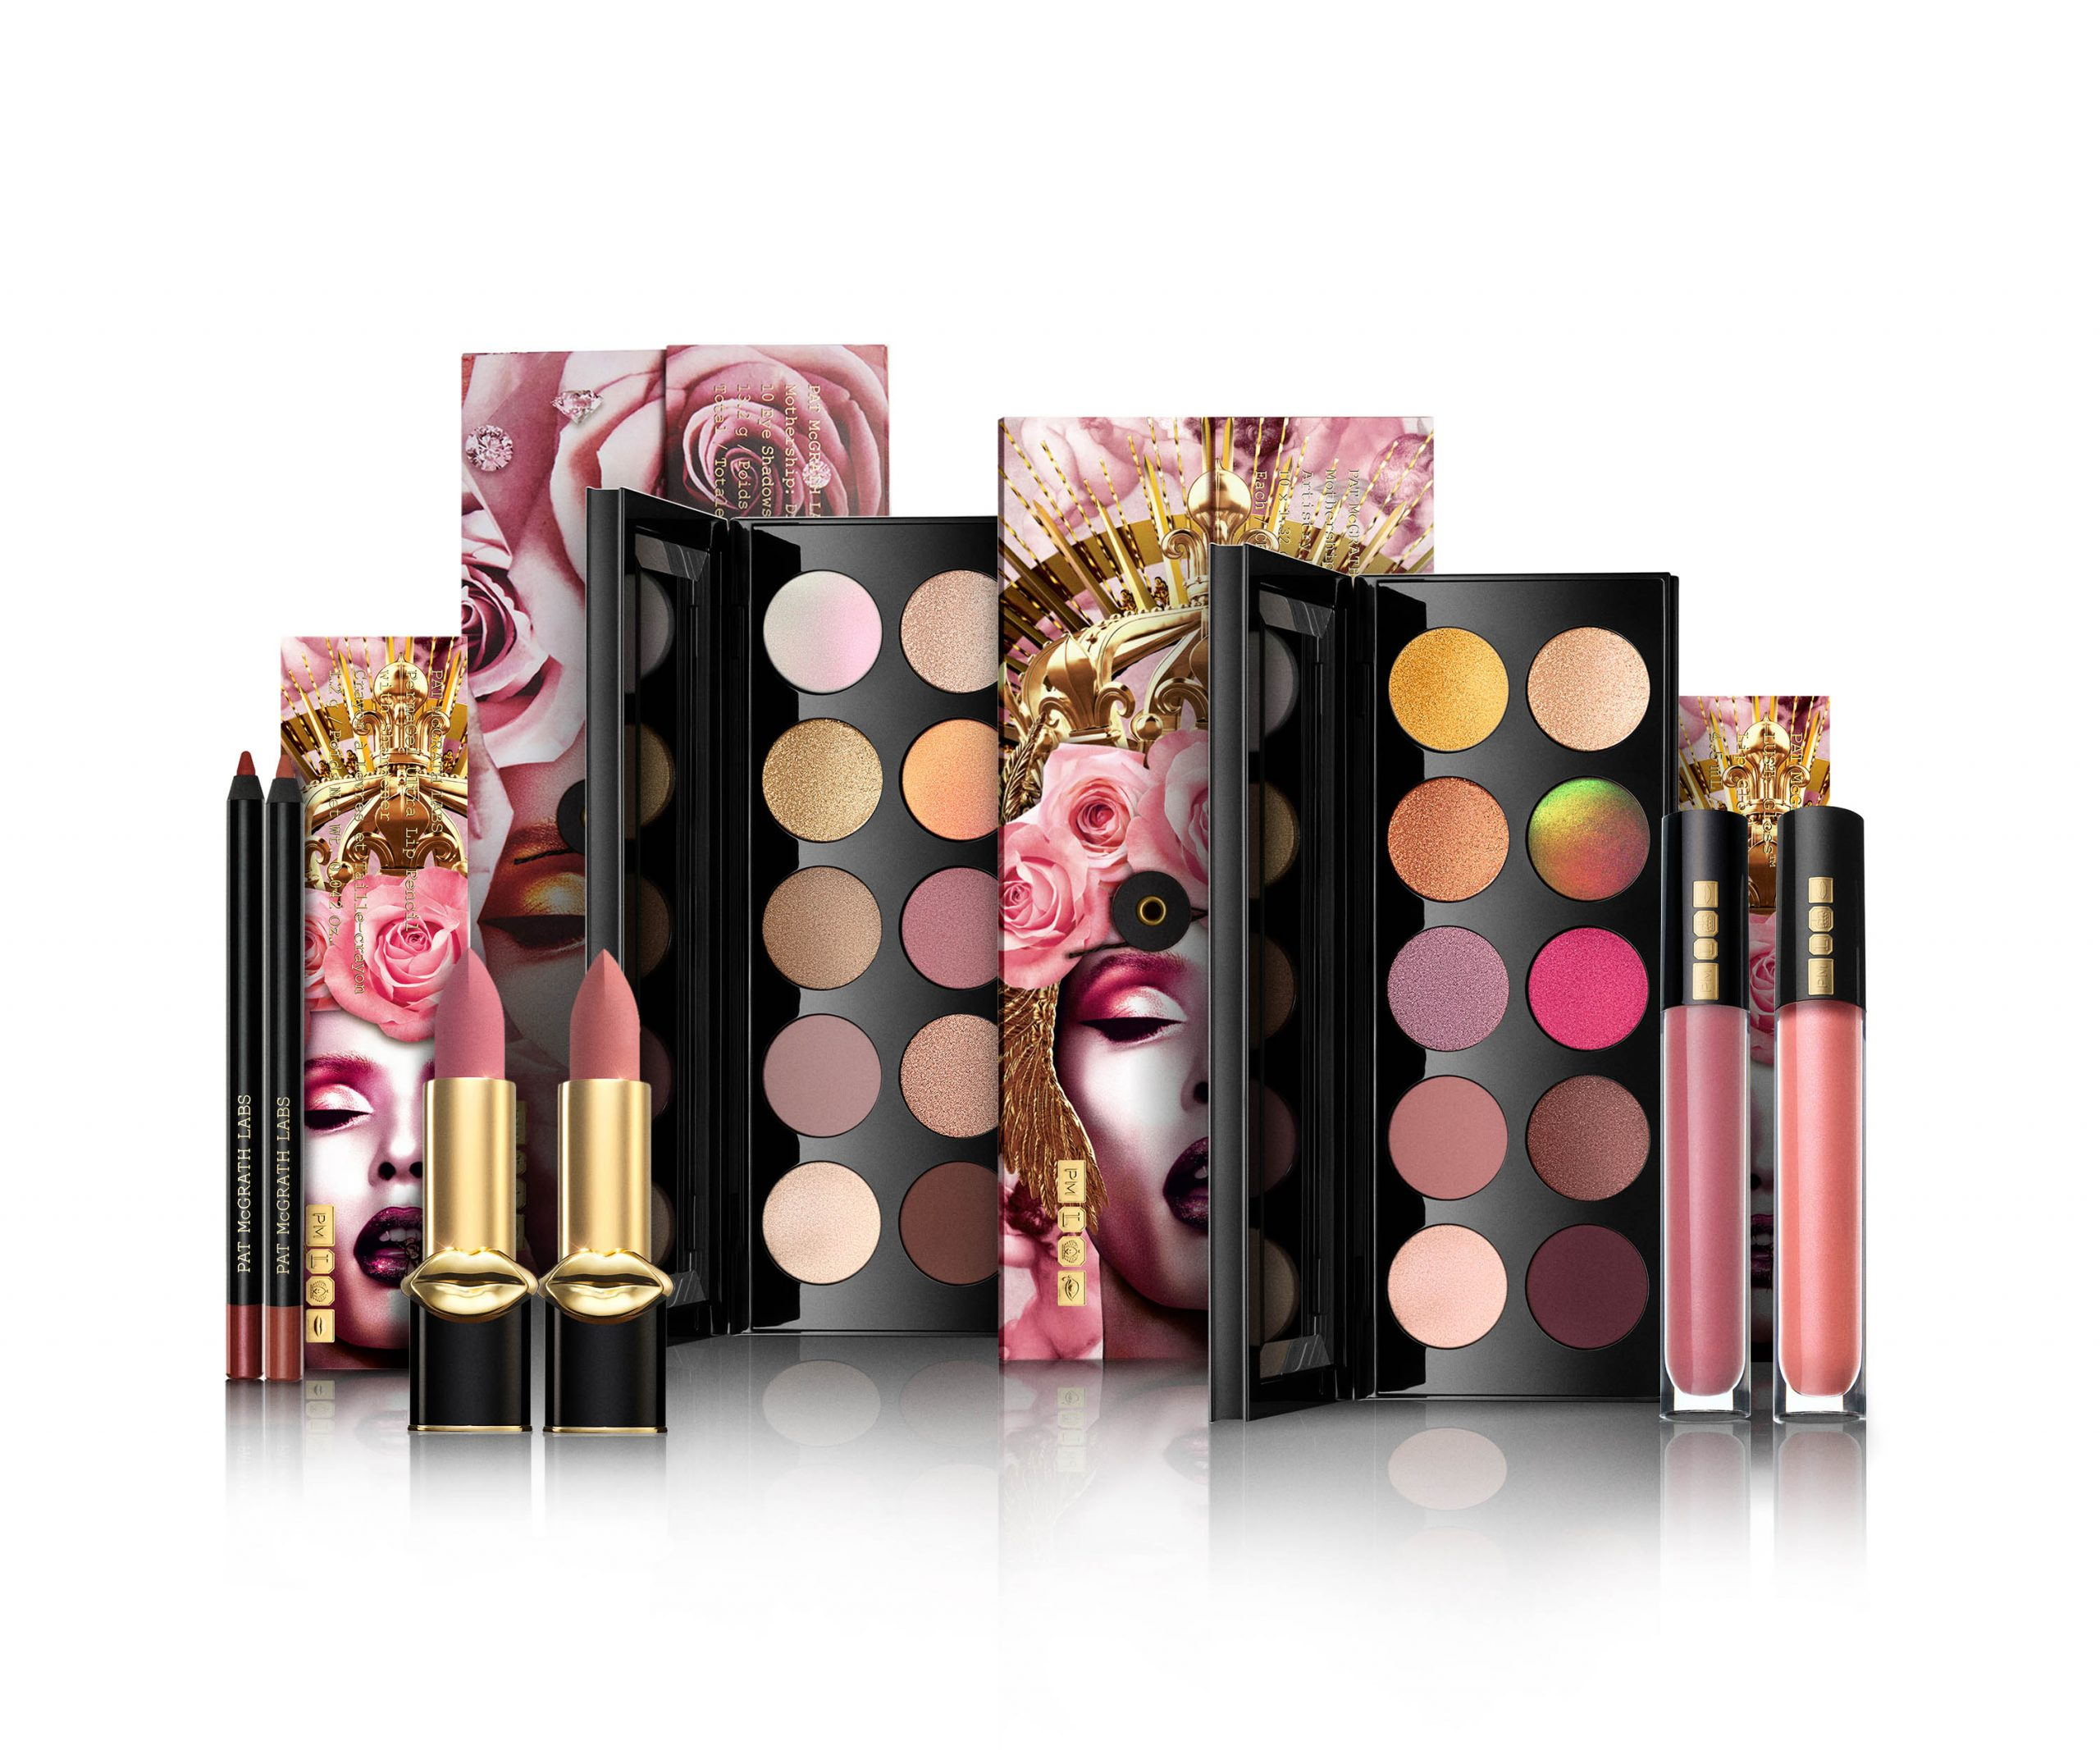 Pat McGrath Divine Rose Collection